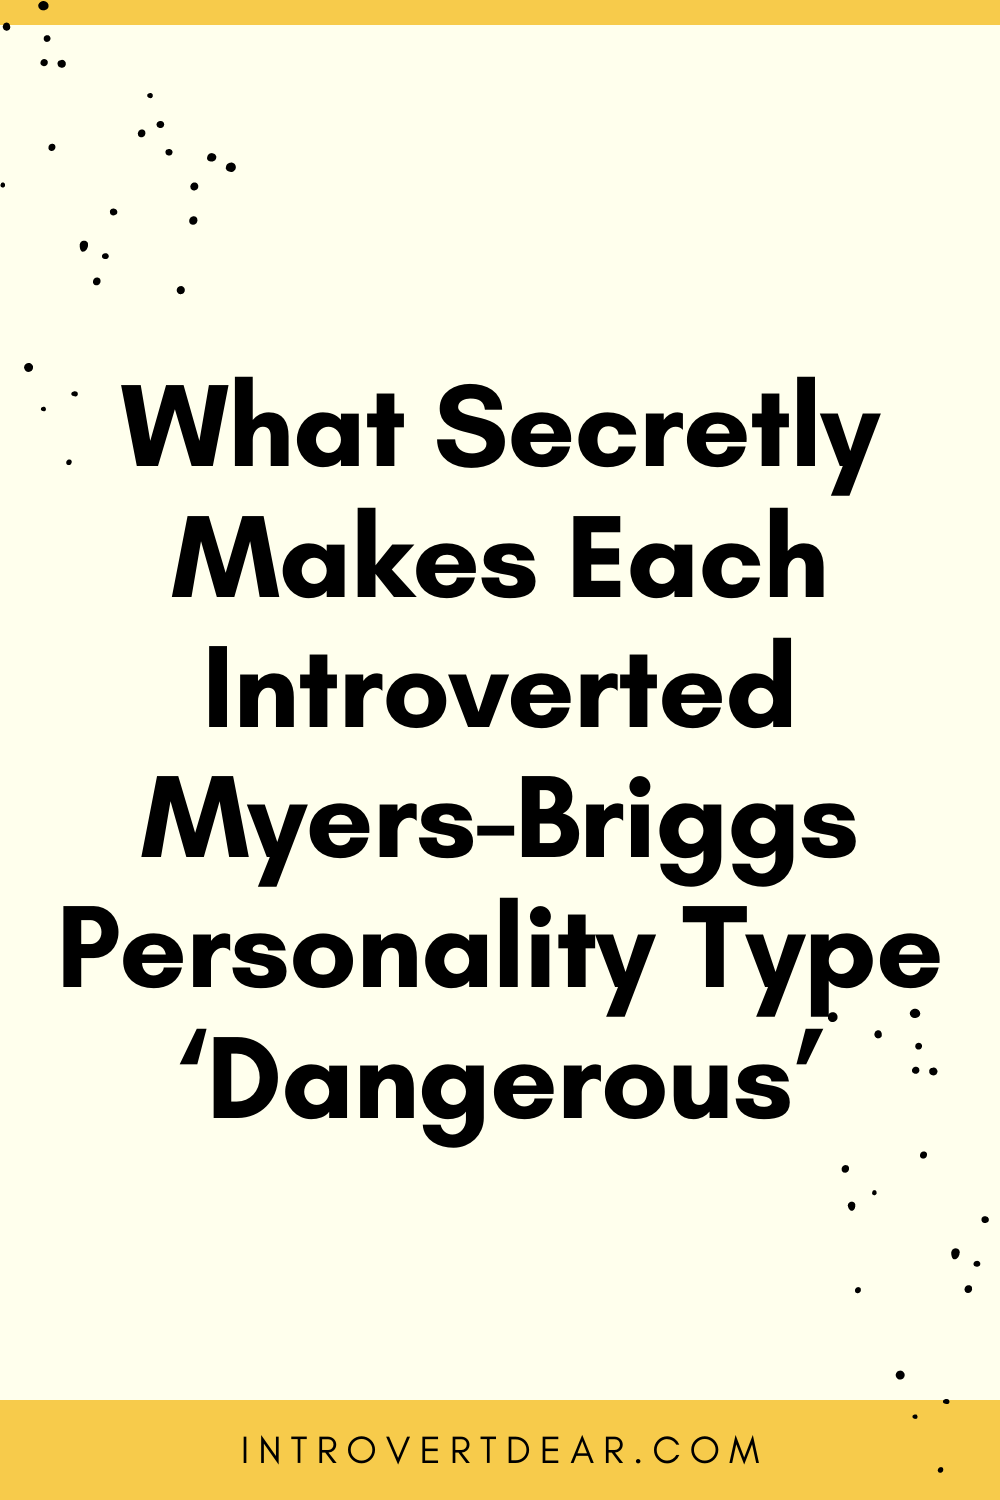 What Secretly Makes Each Introverted Myers-Briggs